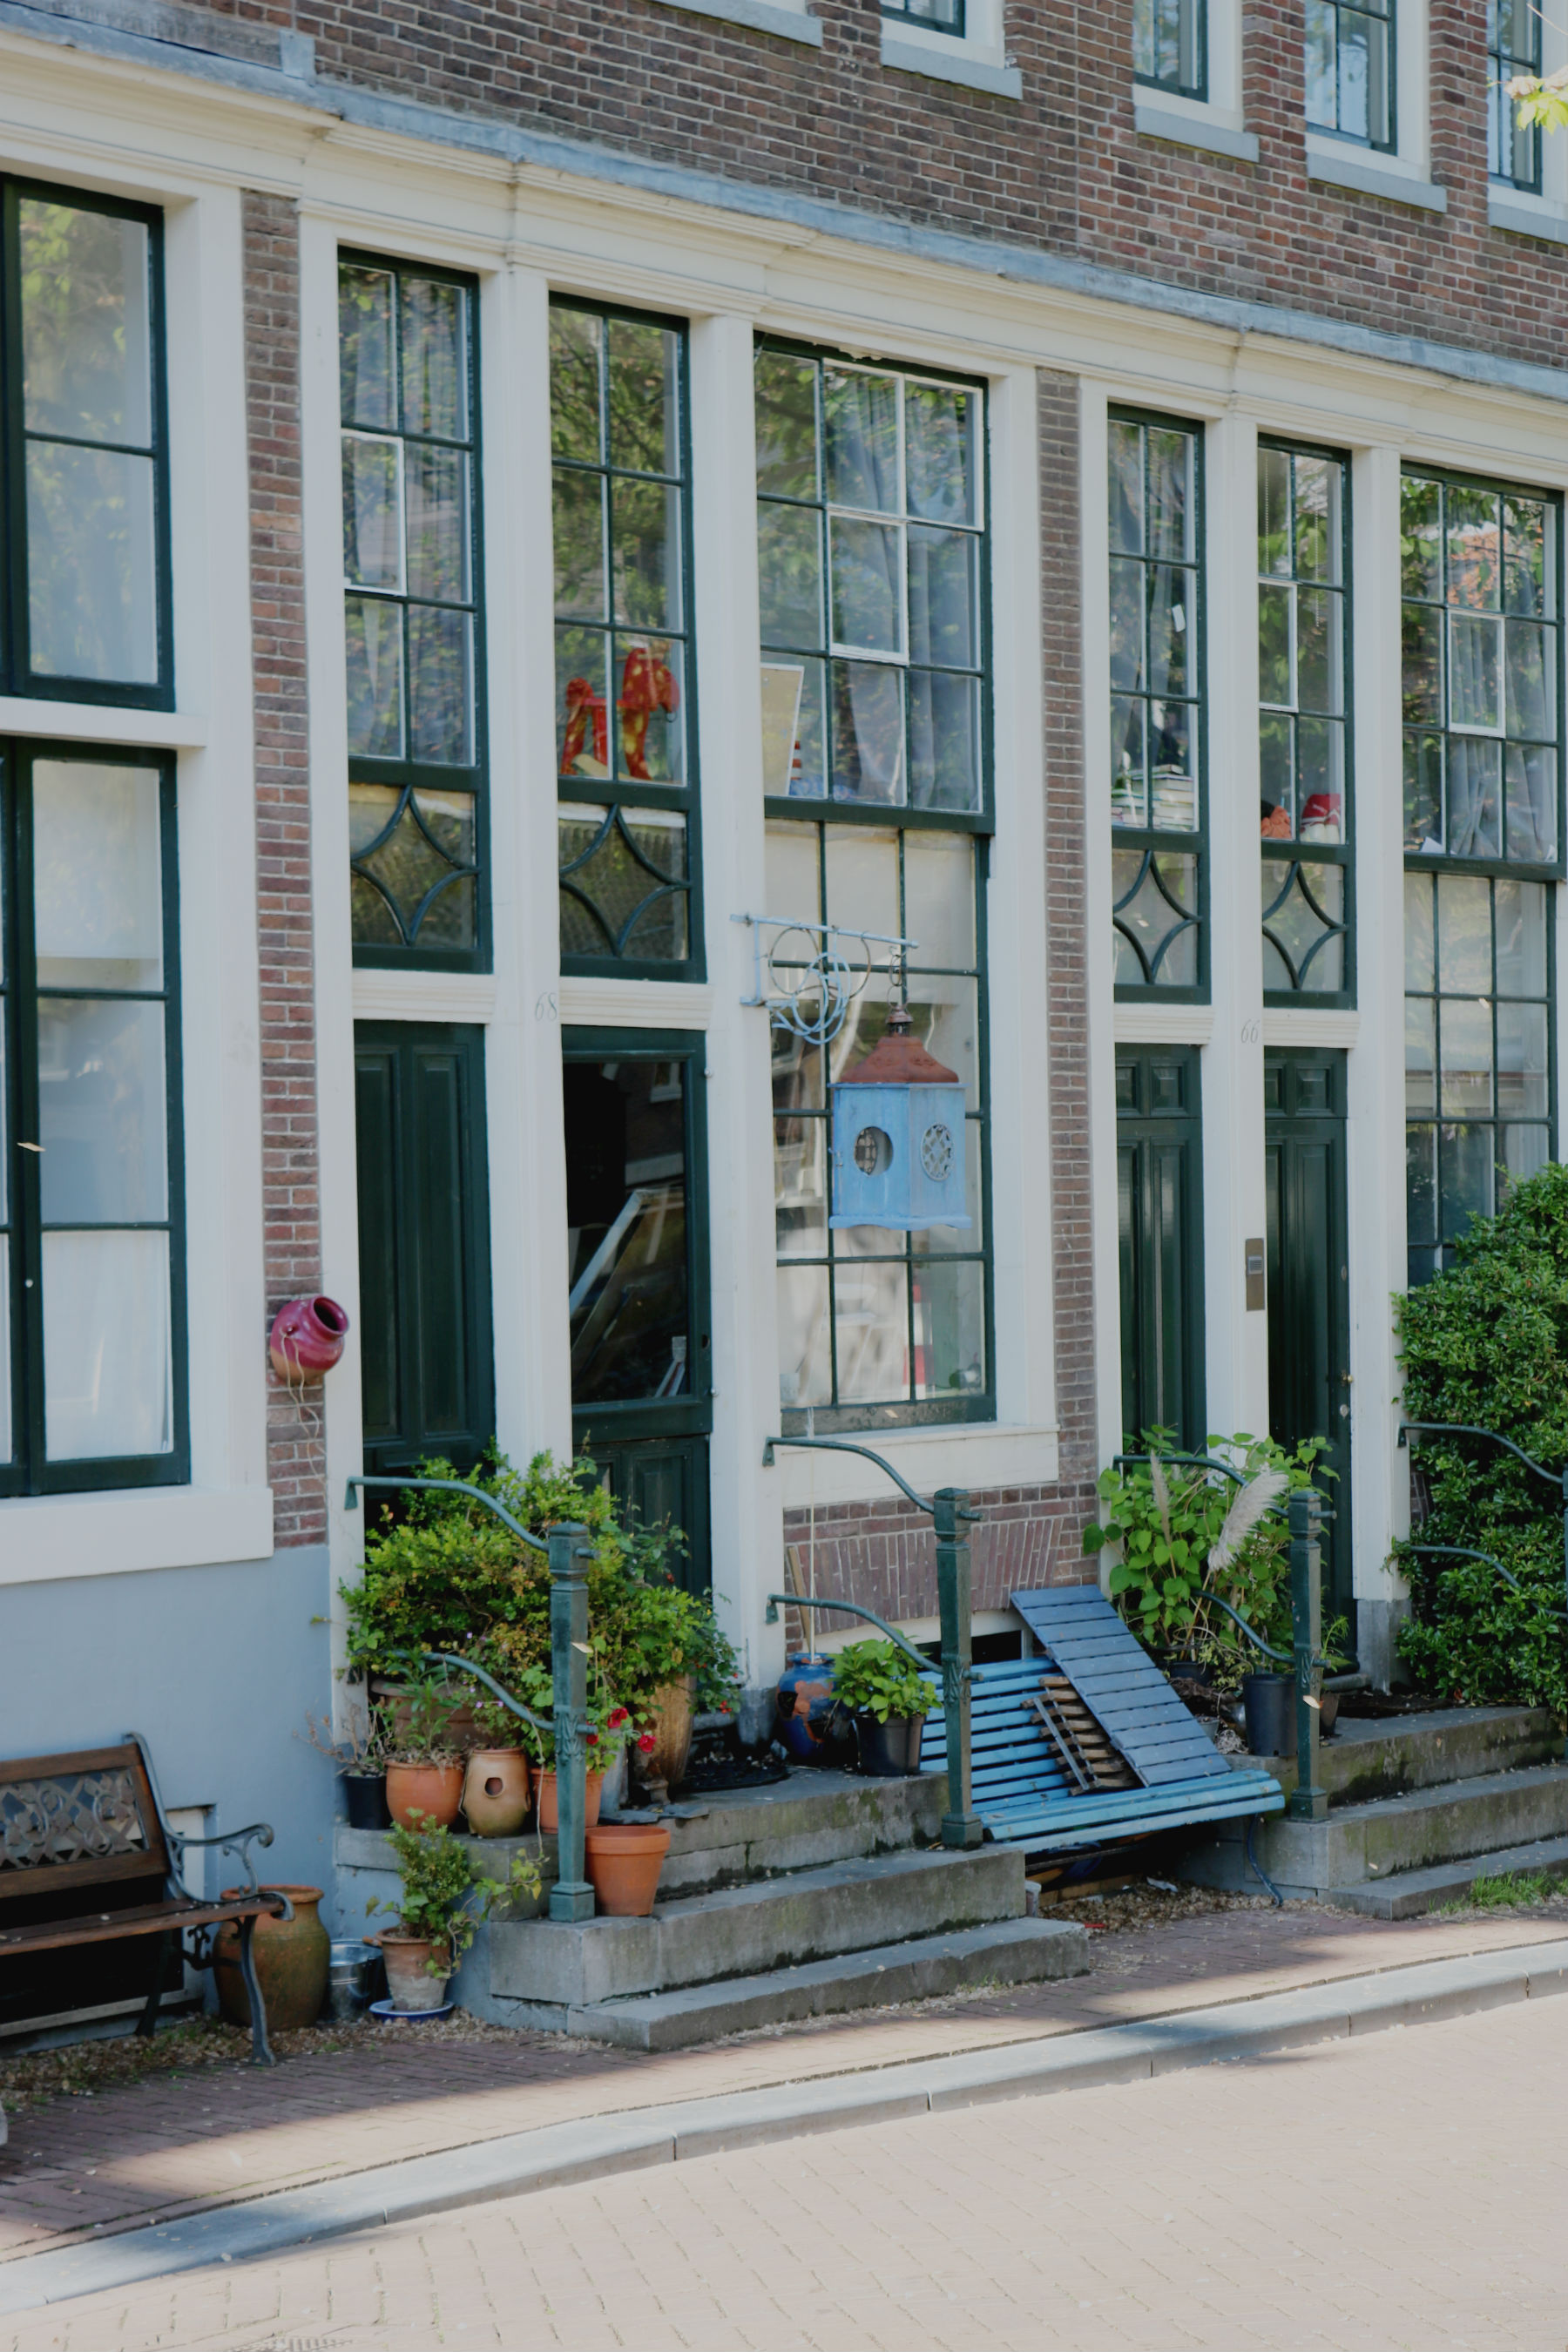 amsterdam house with blue bench outside